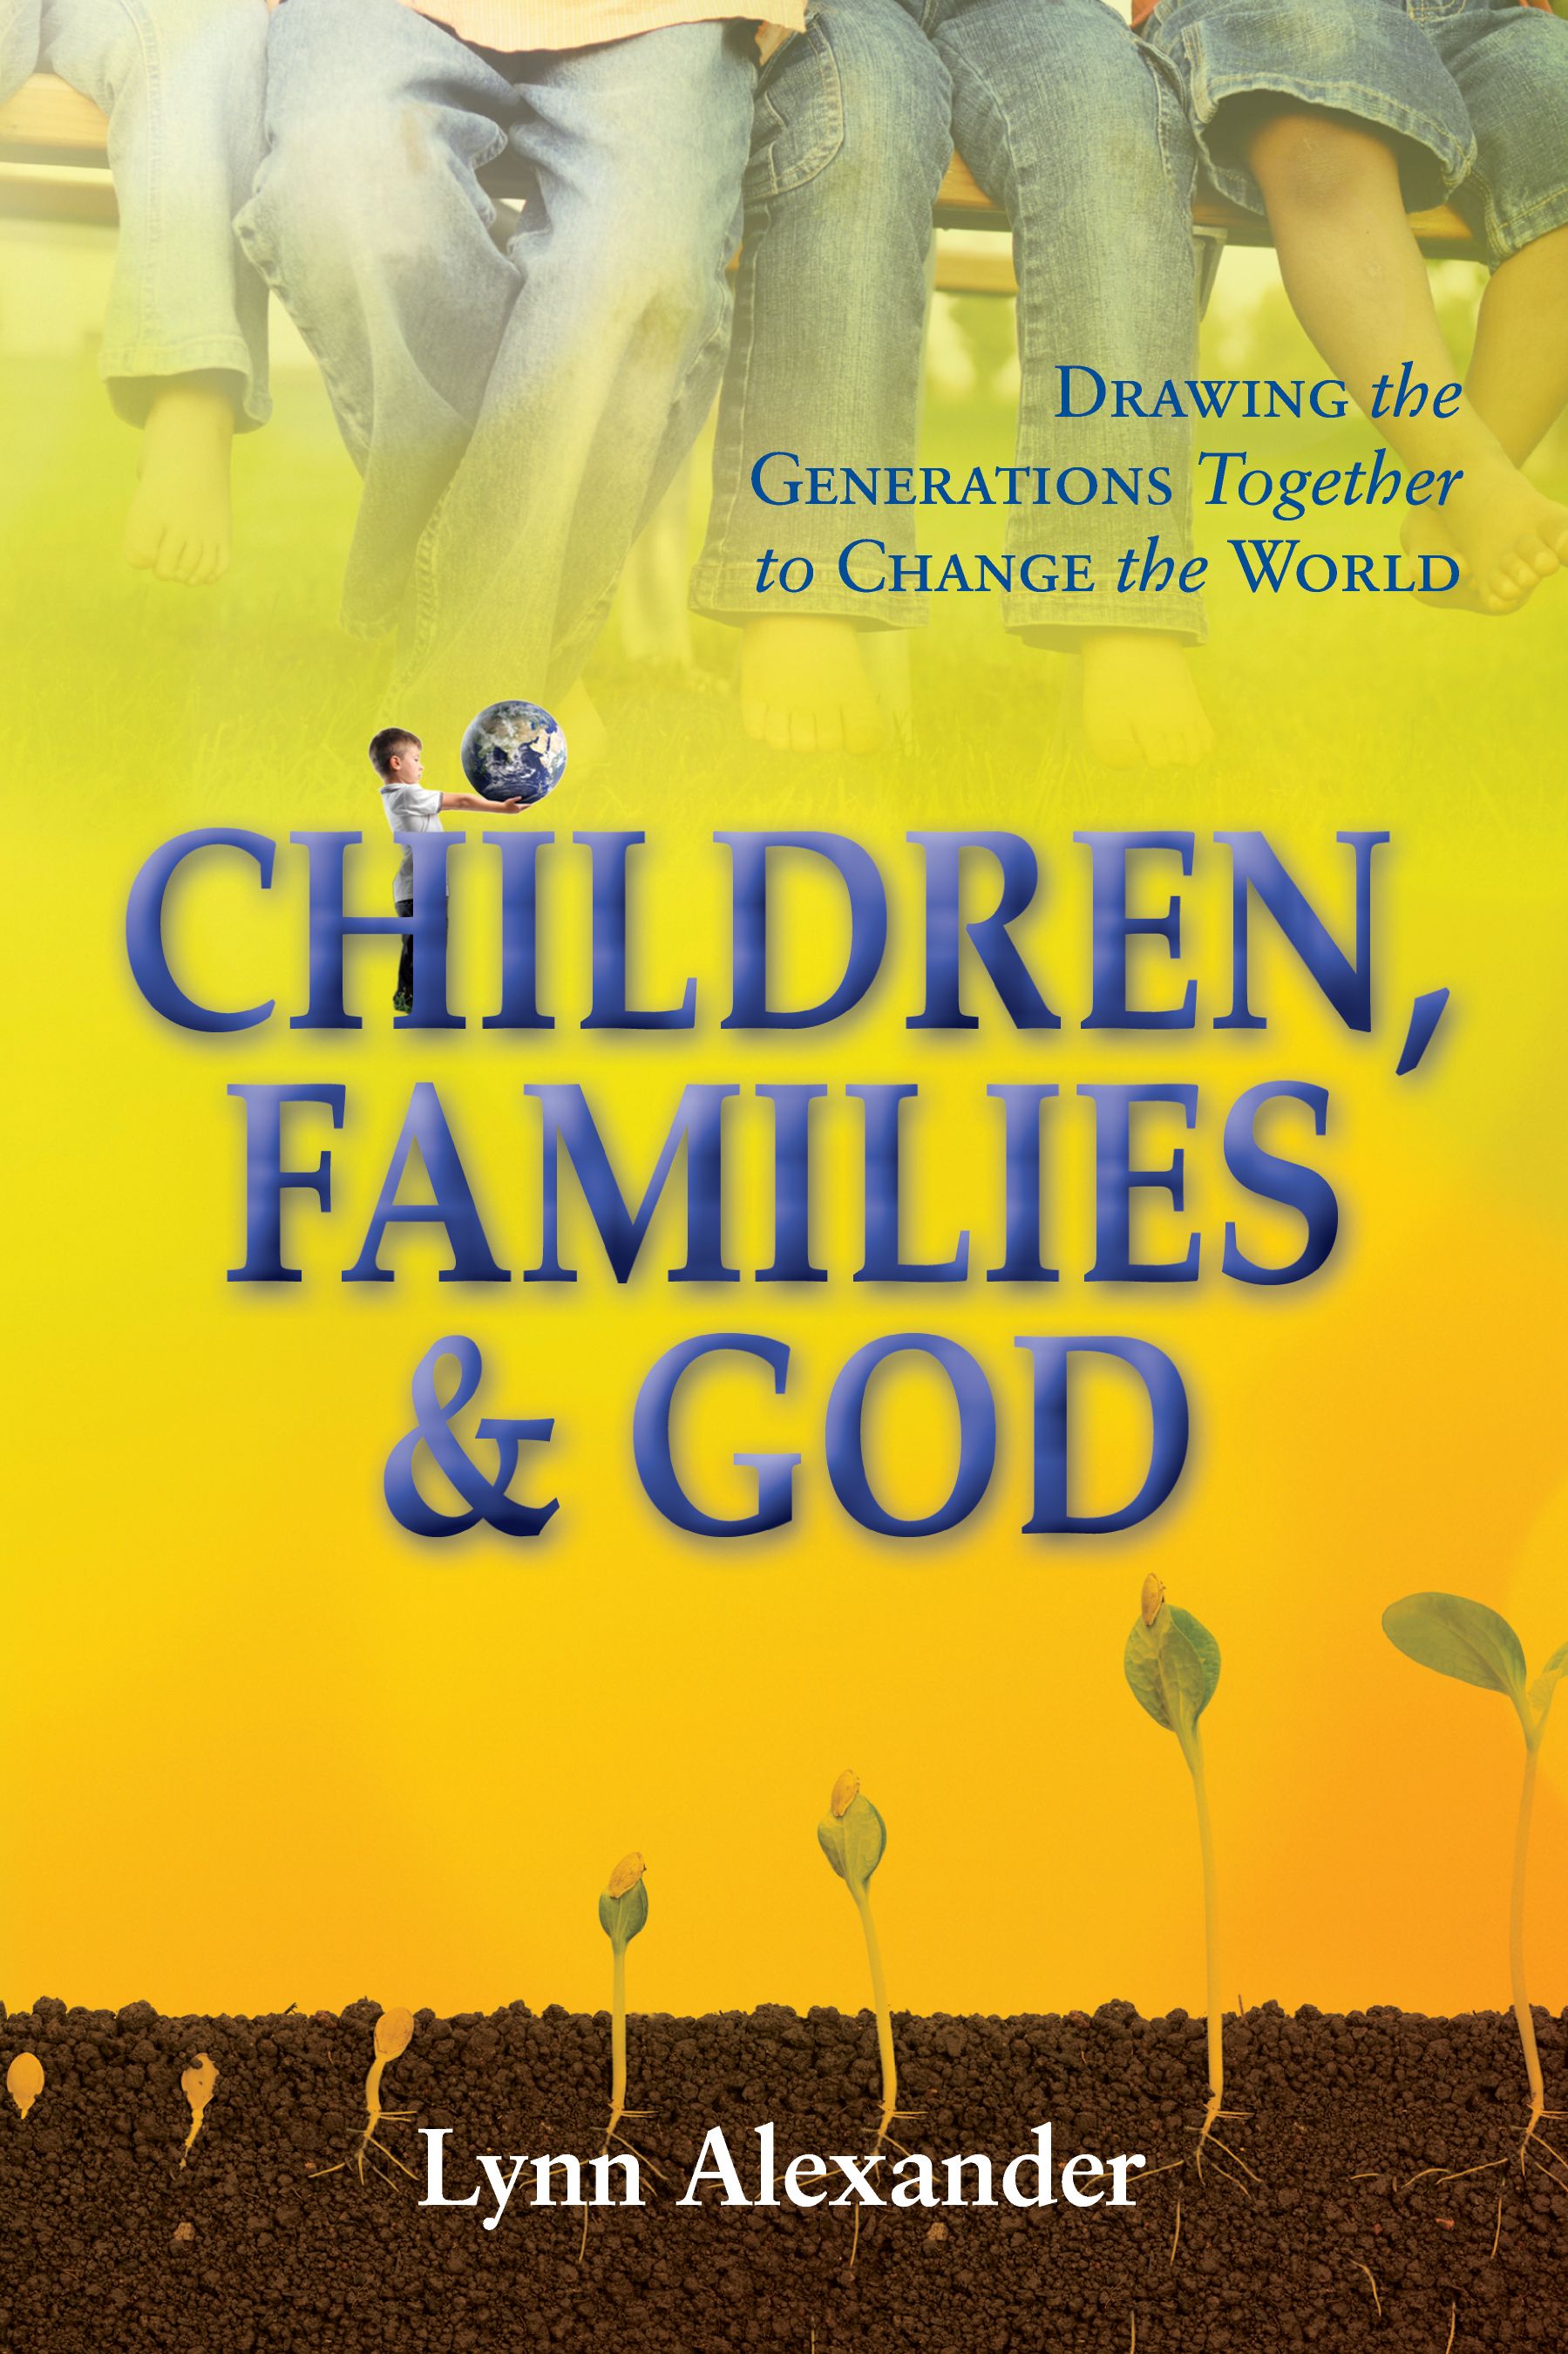 Children, Families & God